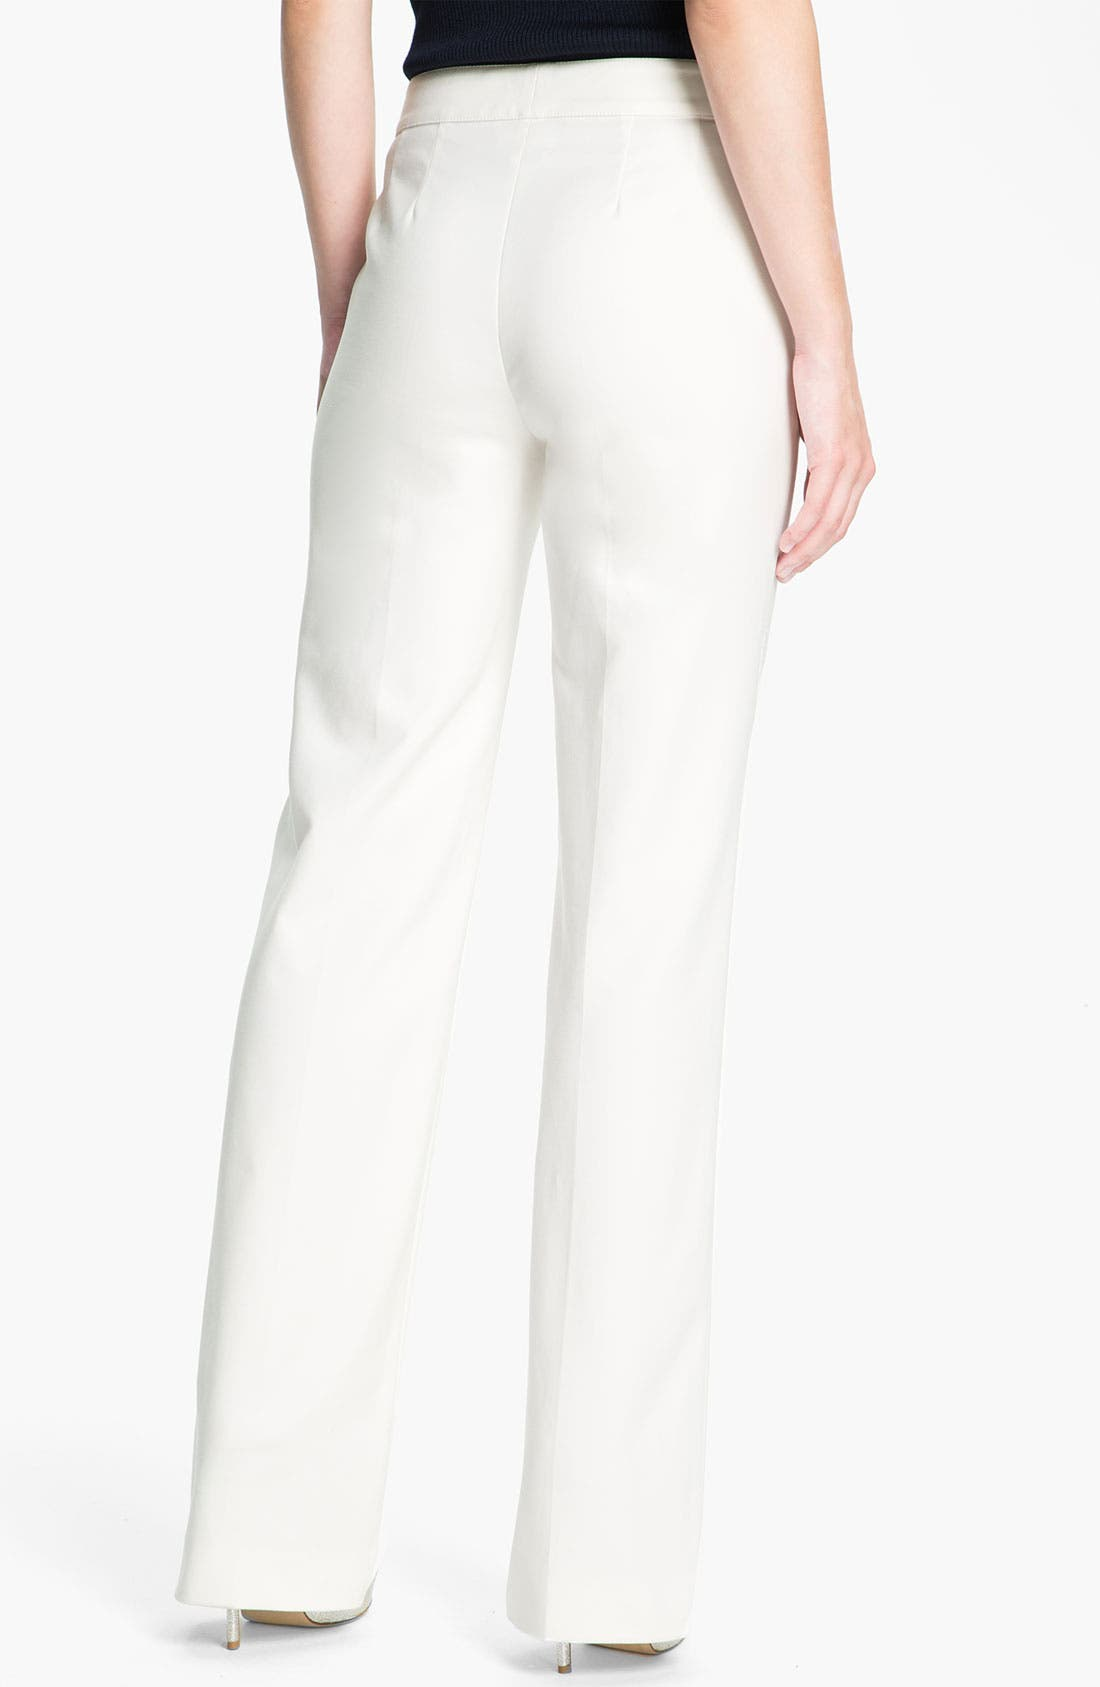 Alternate Image 3  - St. John Collection 'Shelley' Double Weave Stretch Cotton Pants